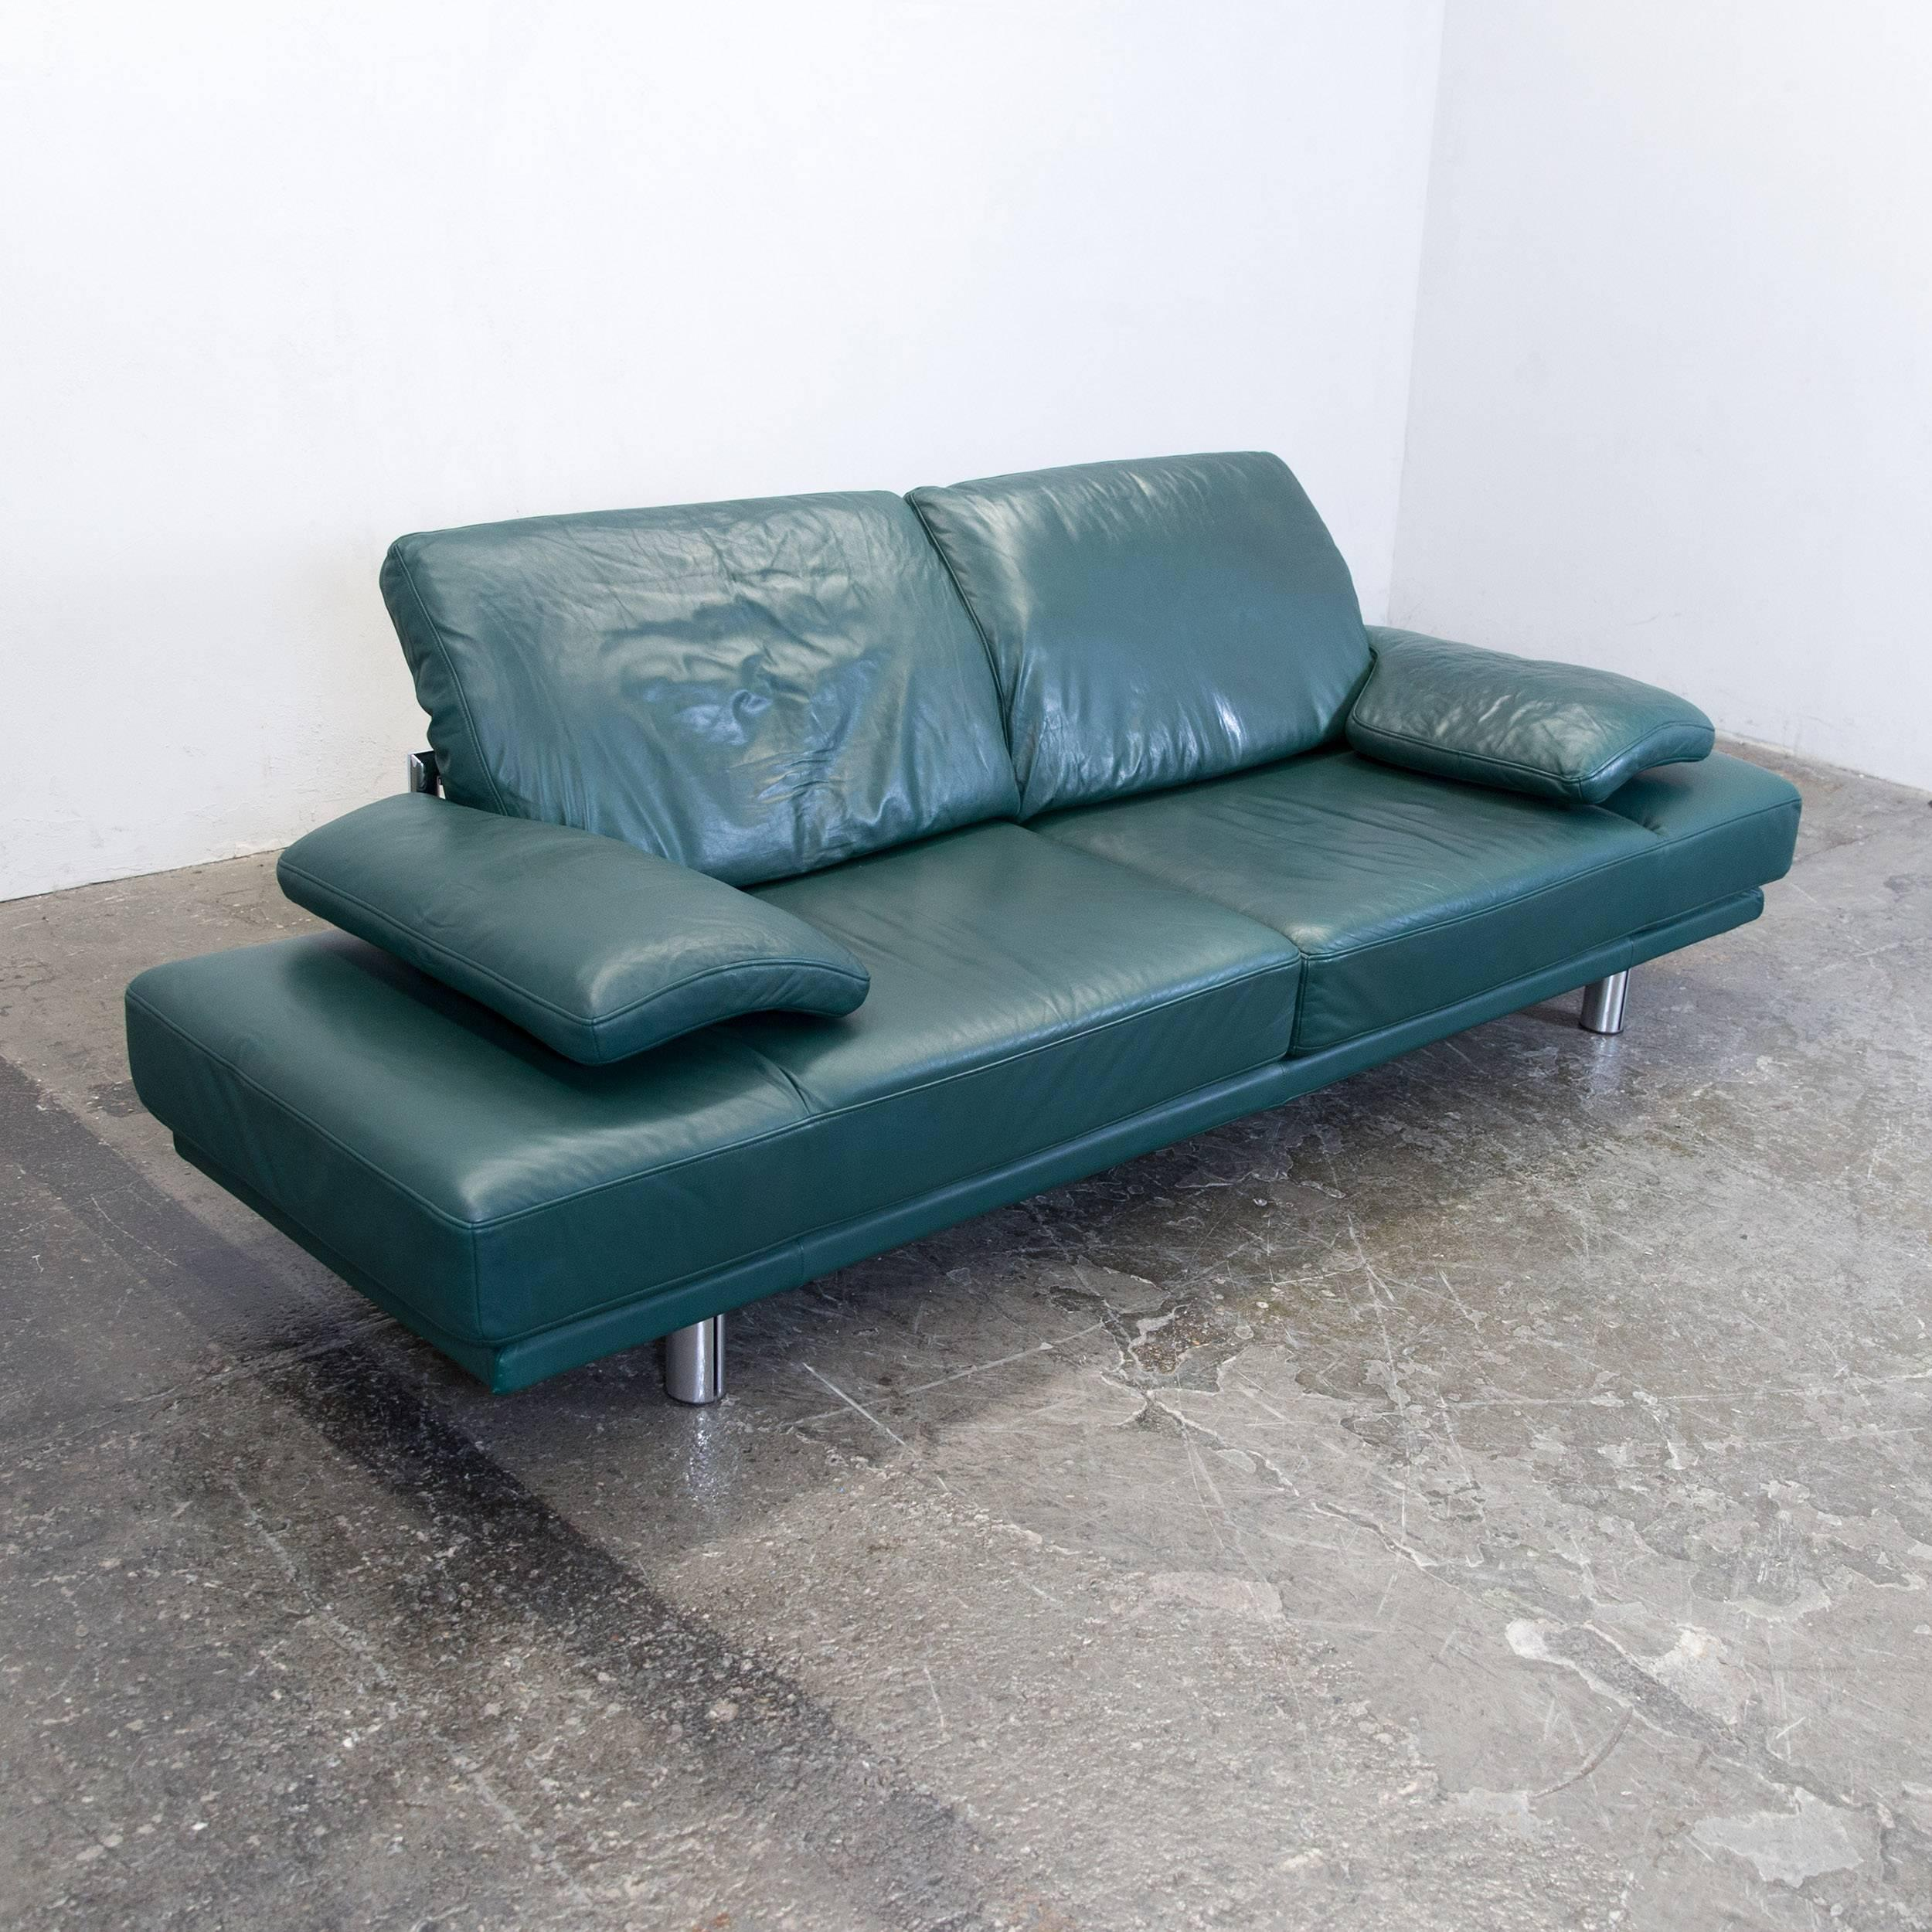 Green Colored Original Rolf Benz Designer Leather Sofa In A Minimalistic  And Modern Design, Made